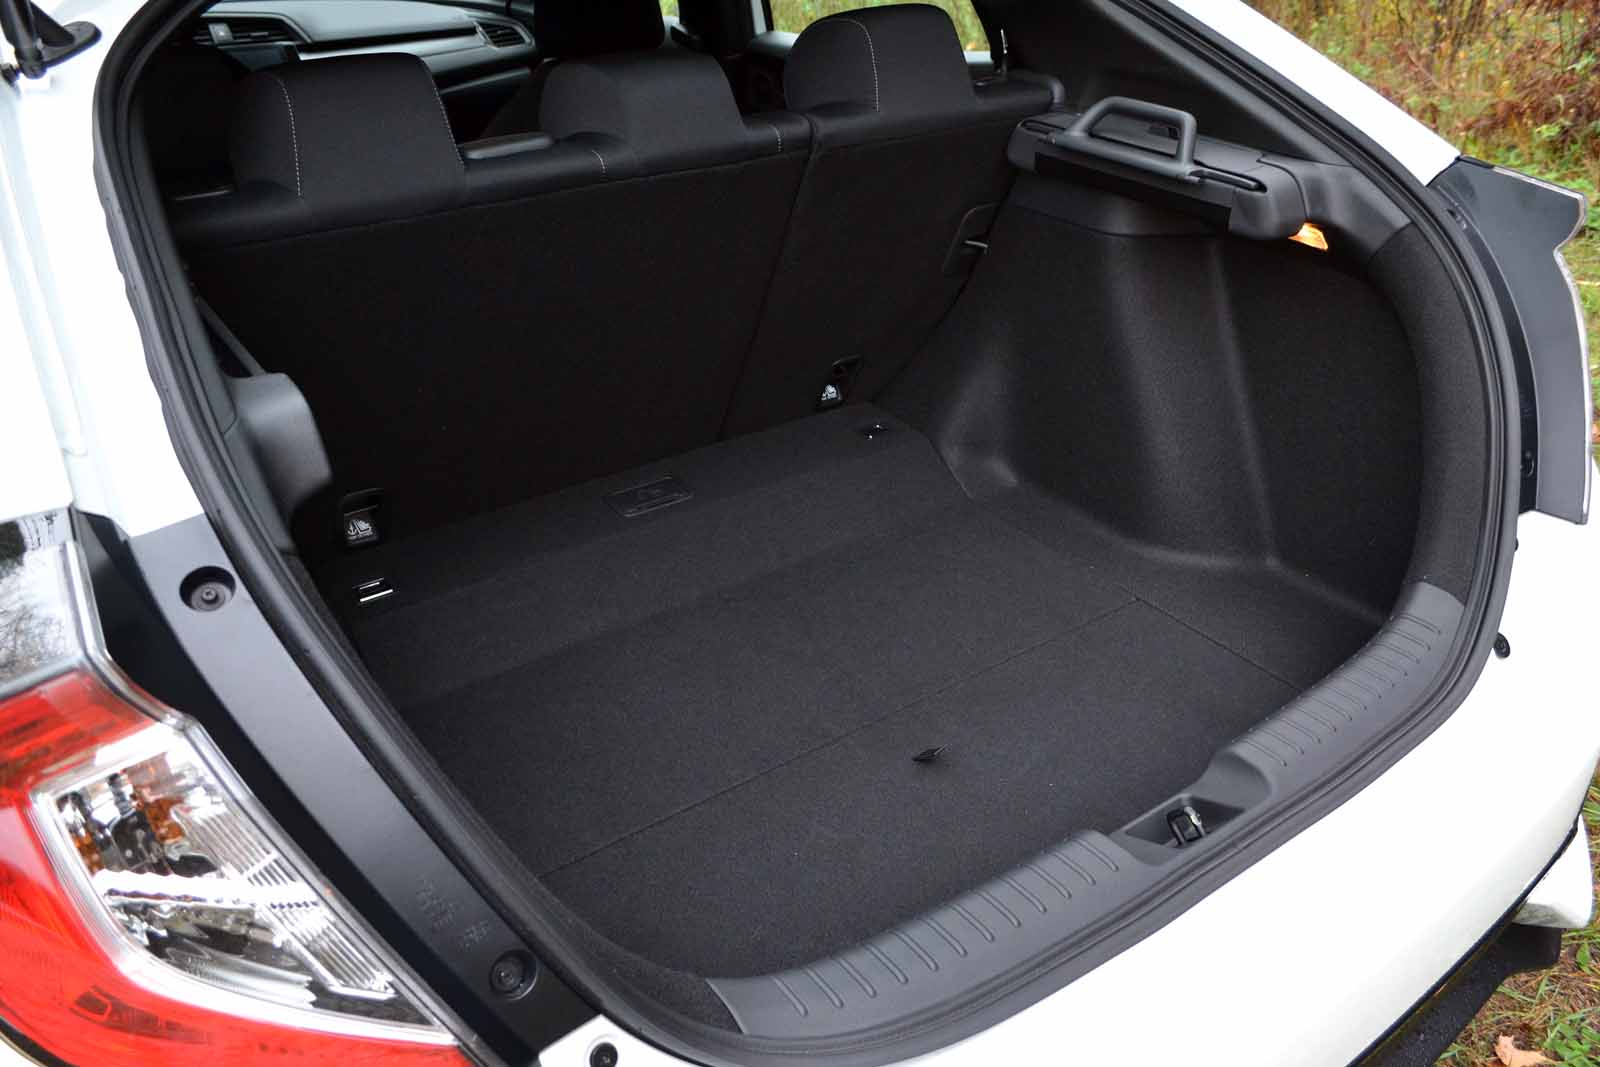 2017 civic hatchback cargo space best new cars for 2018 for Honda accord cargo space